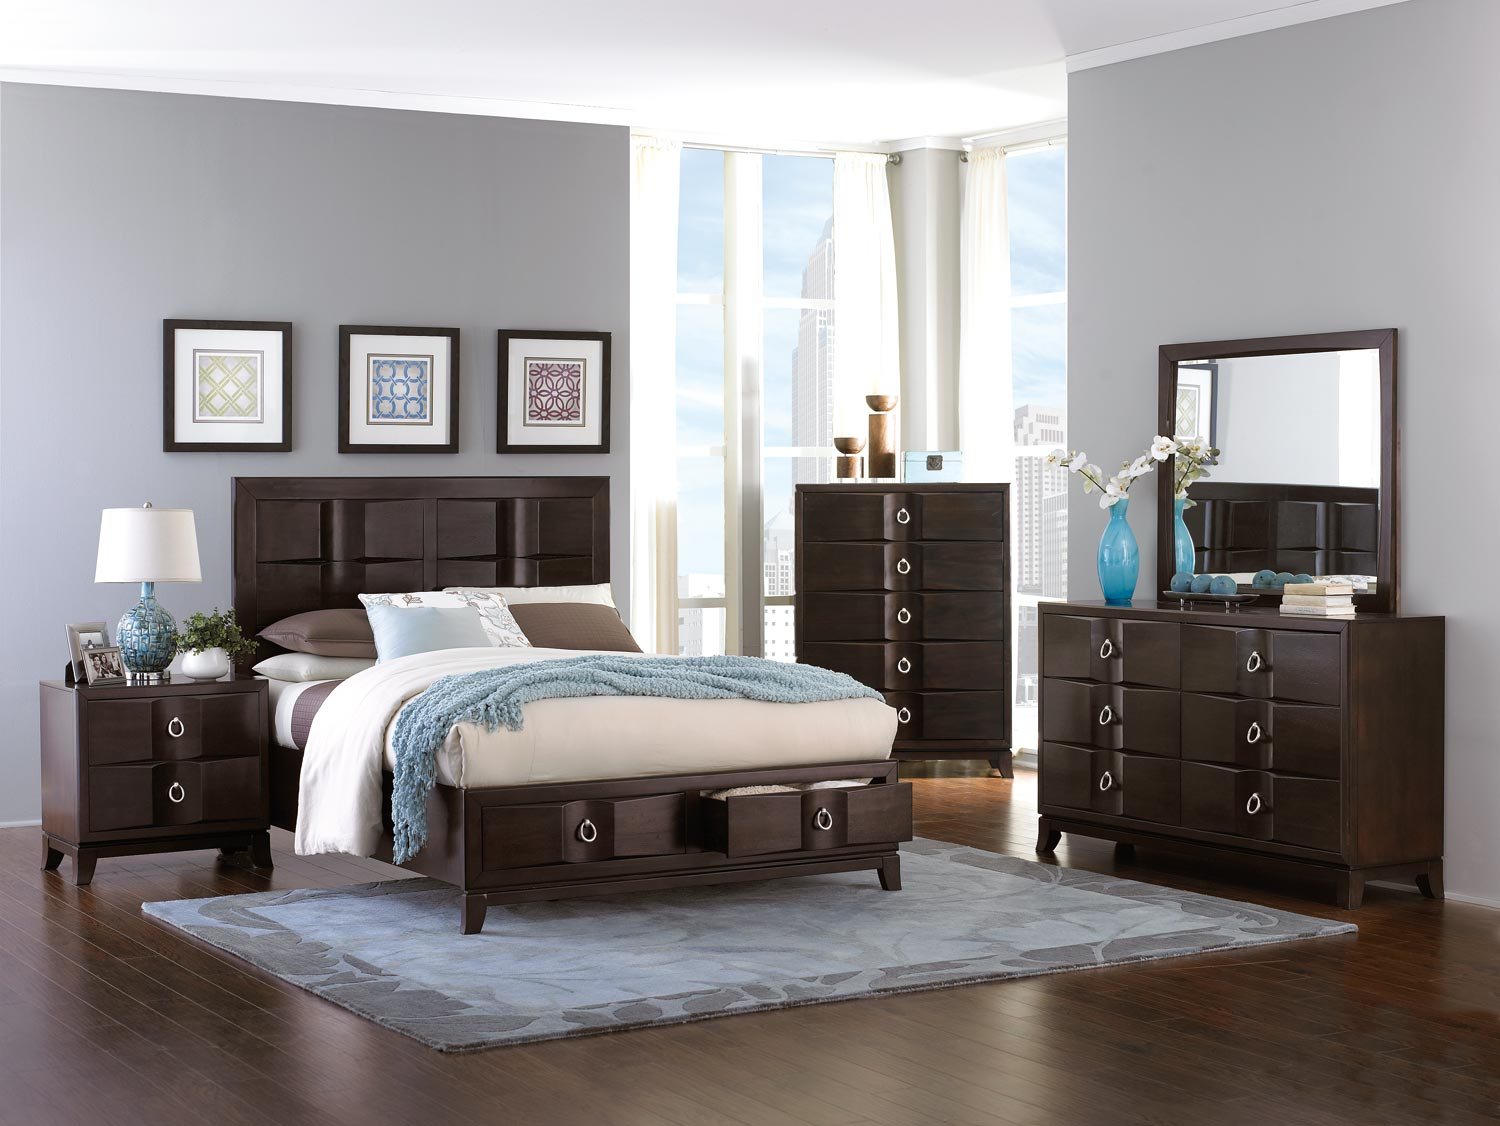 Homelegance Edmonston Platform Storage Bed Collection - Espresso